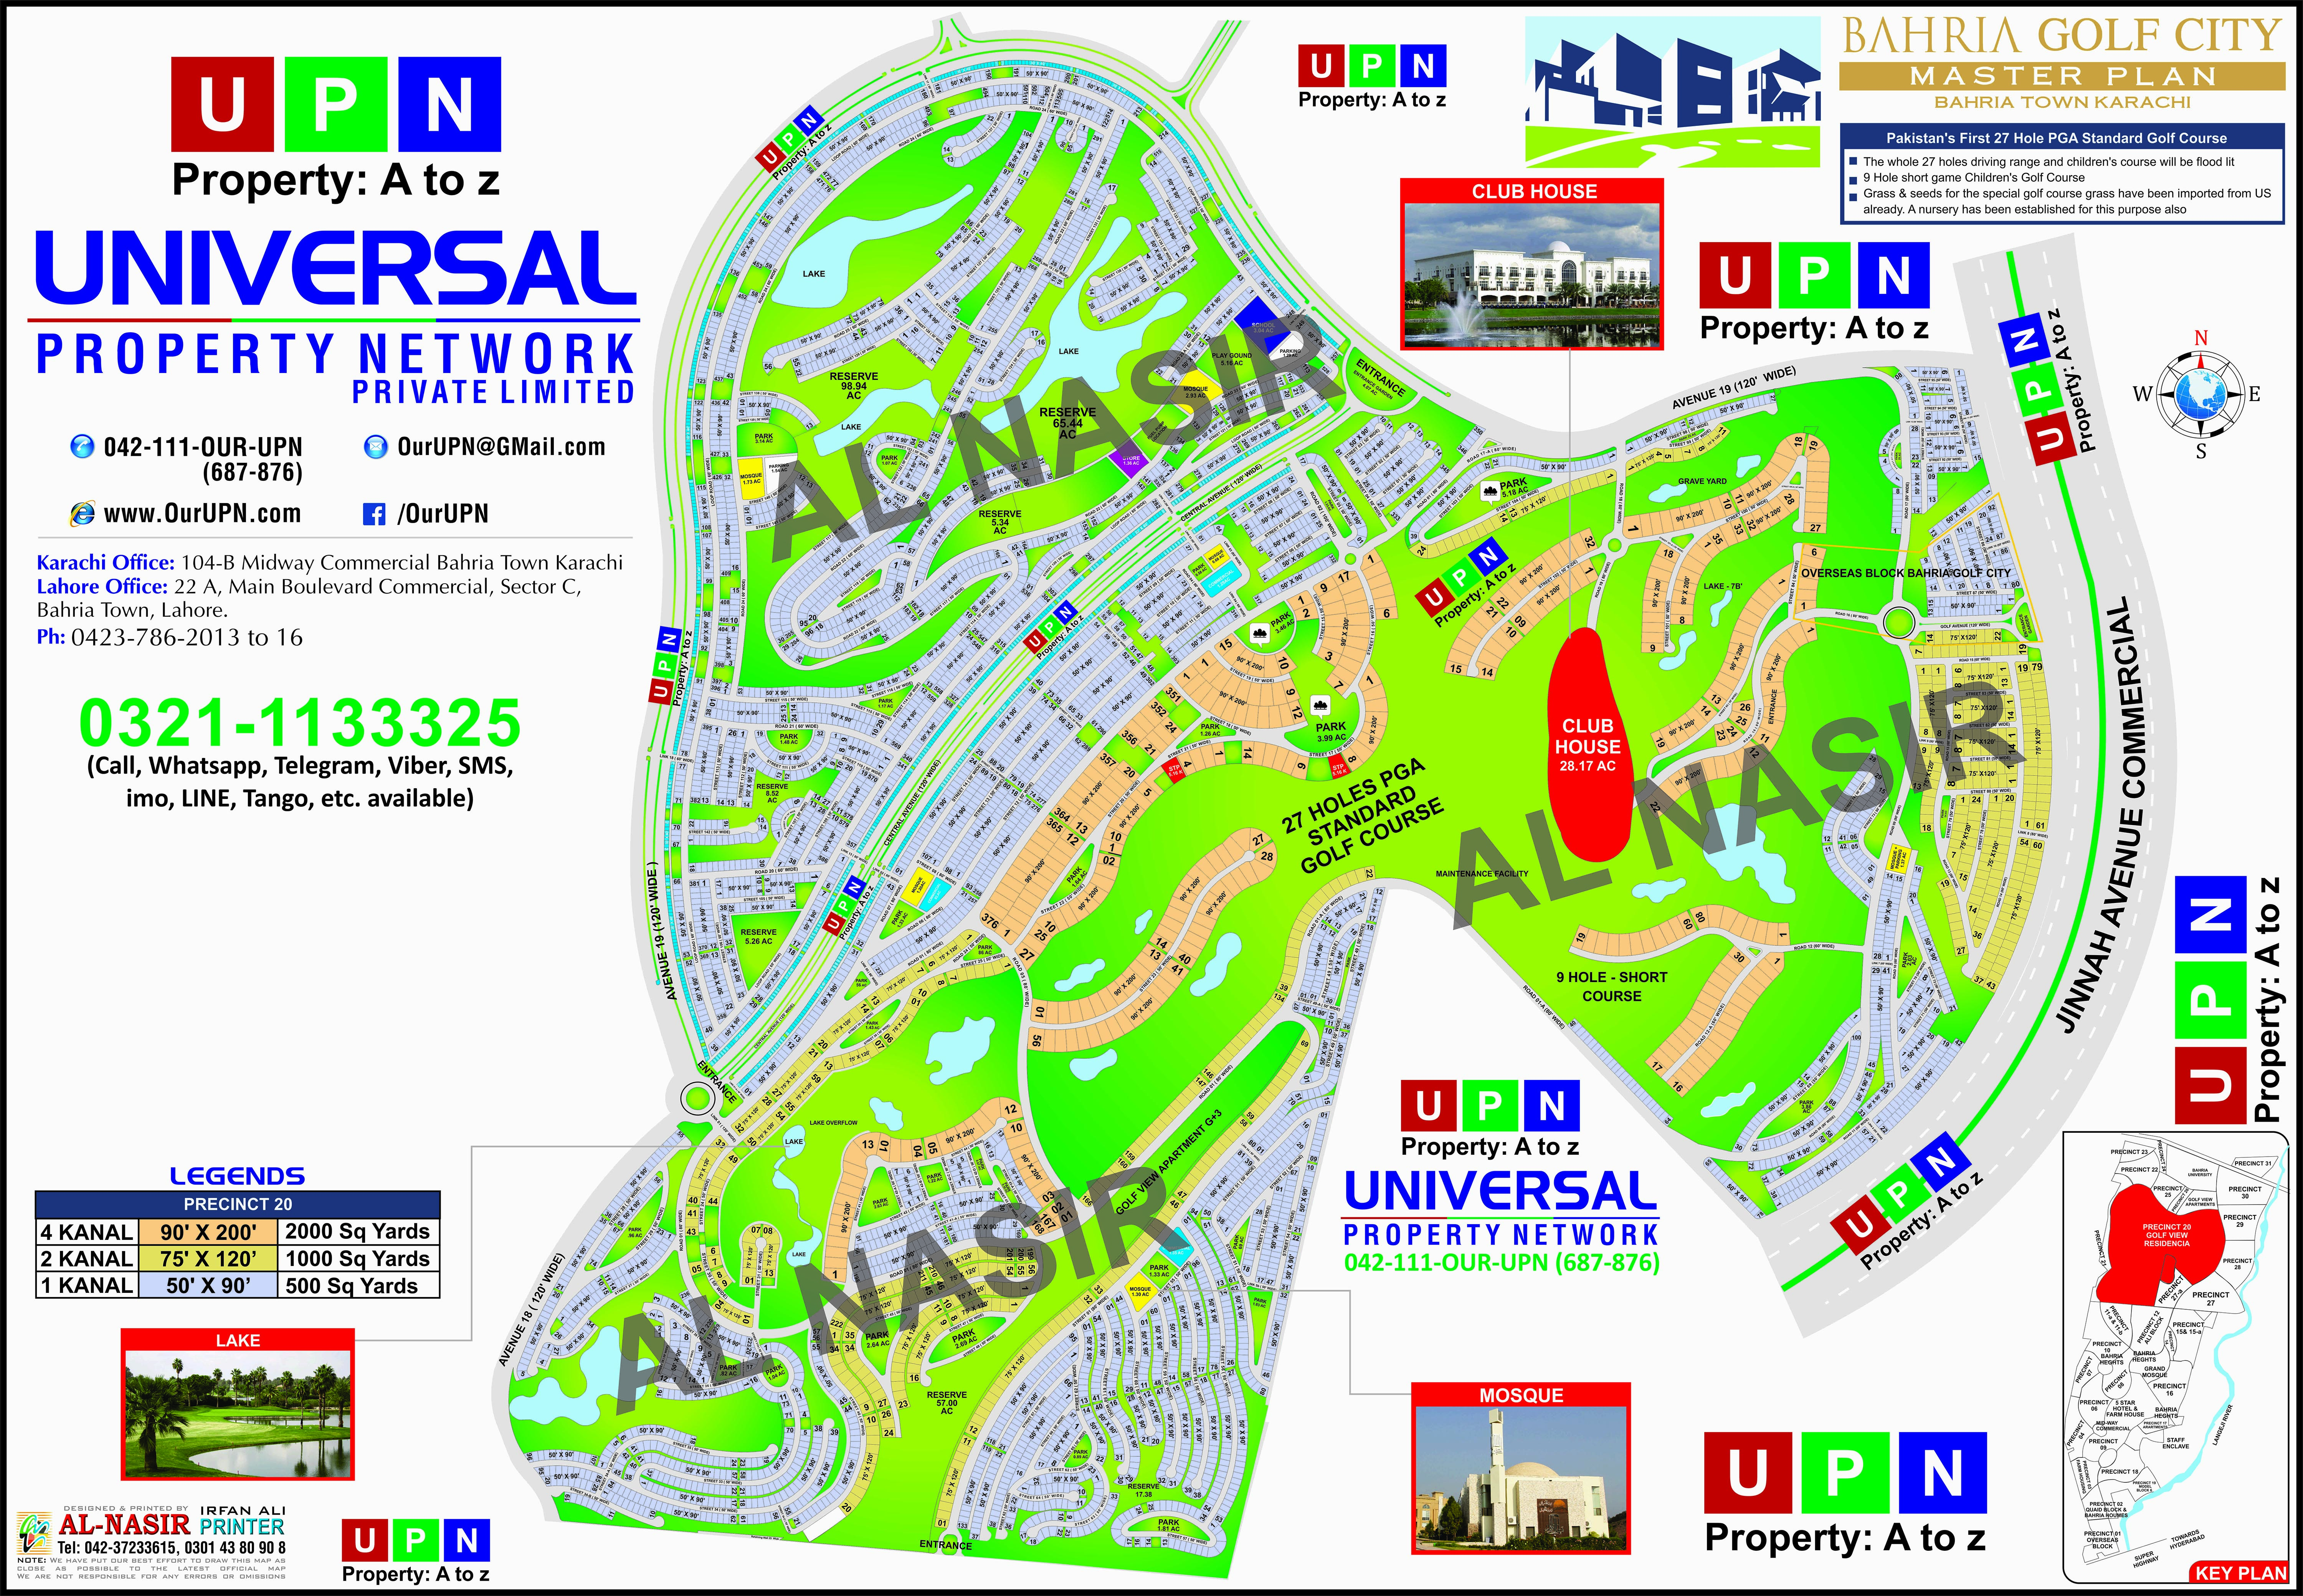 gmail map mind map google services map new lahore city upn